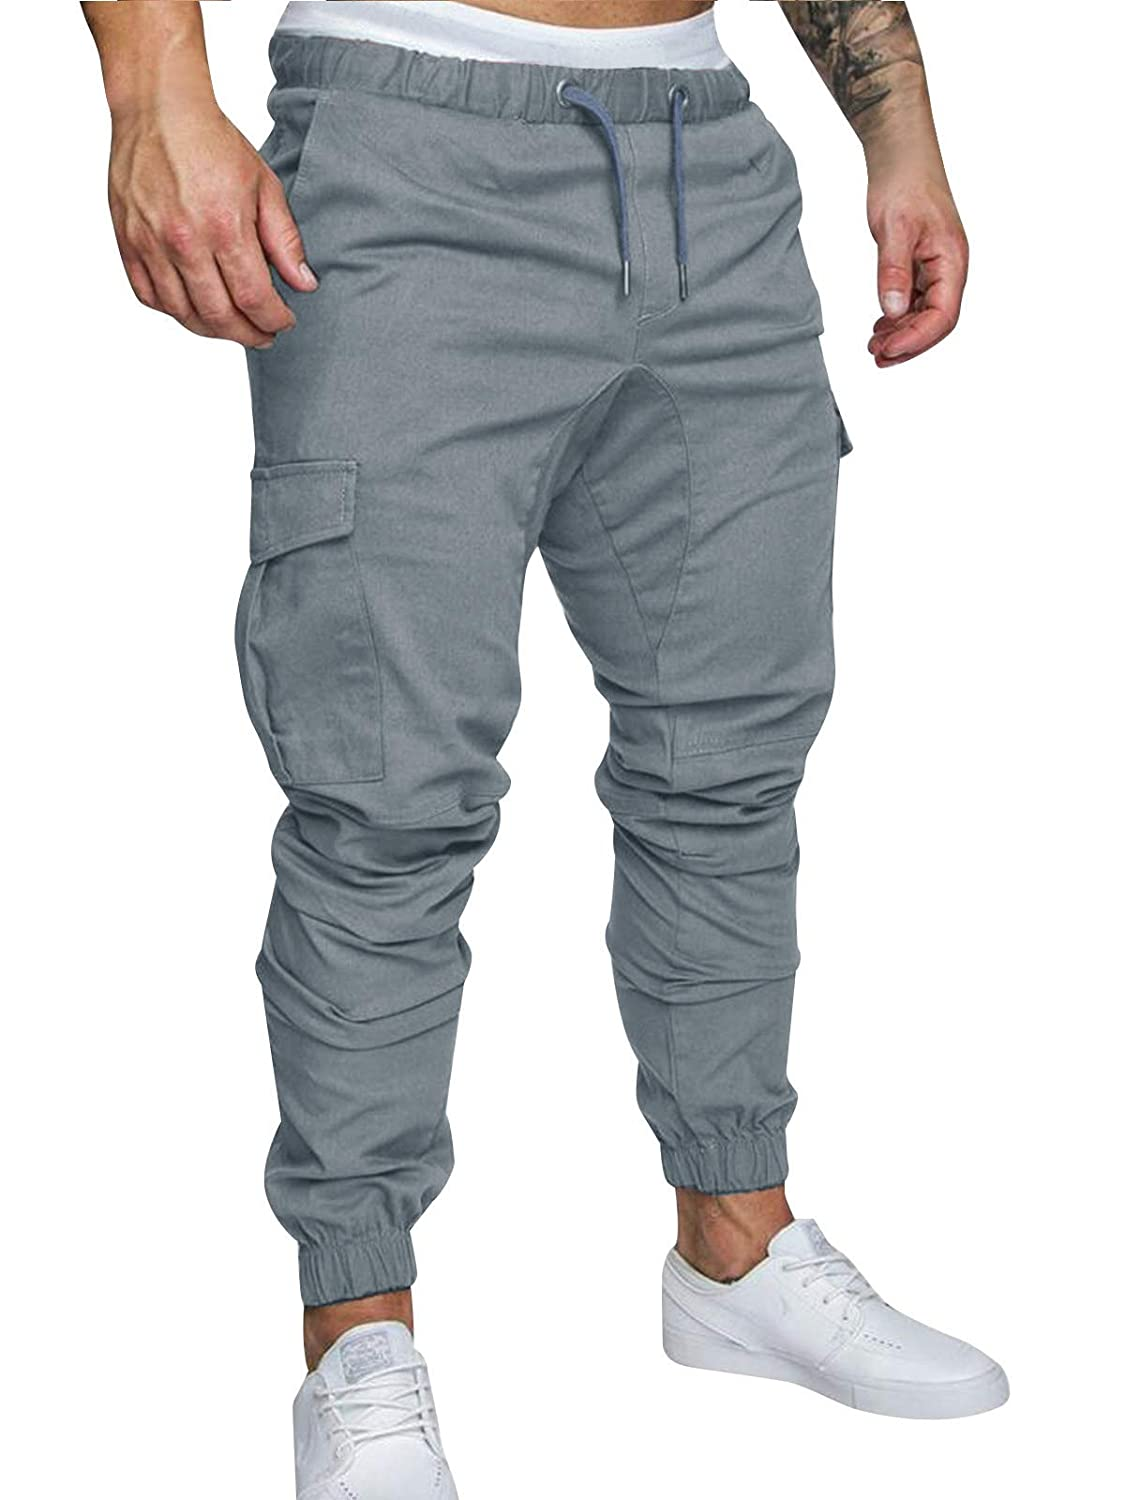 Cindeyar Men's Cargo Pants Slim Fit Casual Jogger Pant Chino Trousers Sweatpants